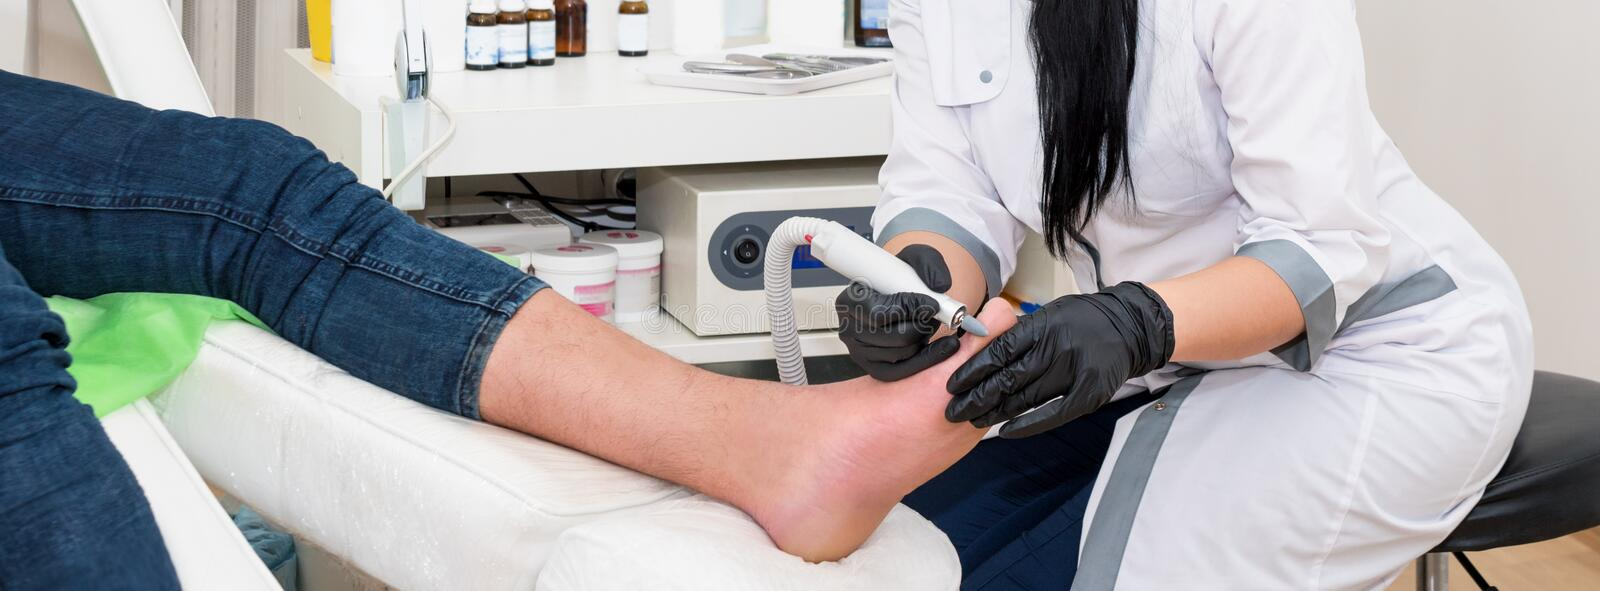 Podology treatment. Podiatrist treats foot. Podiatry doctor or dermatologist treats the patient in modern clinic royalty free stock image